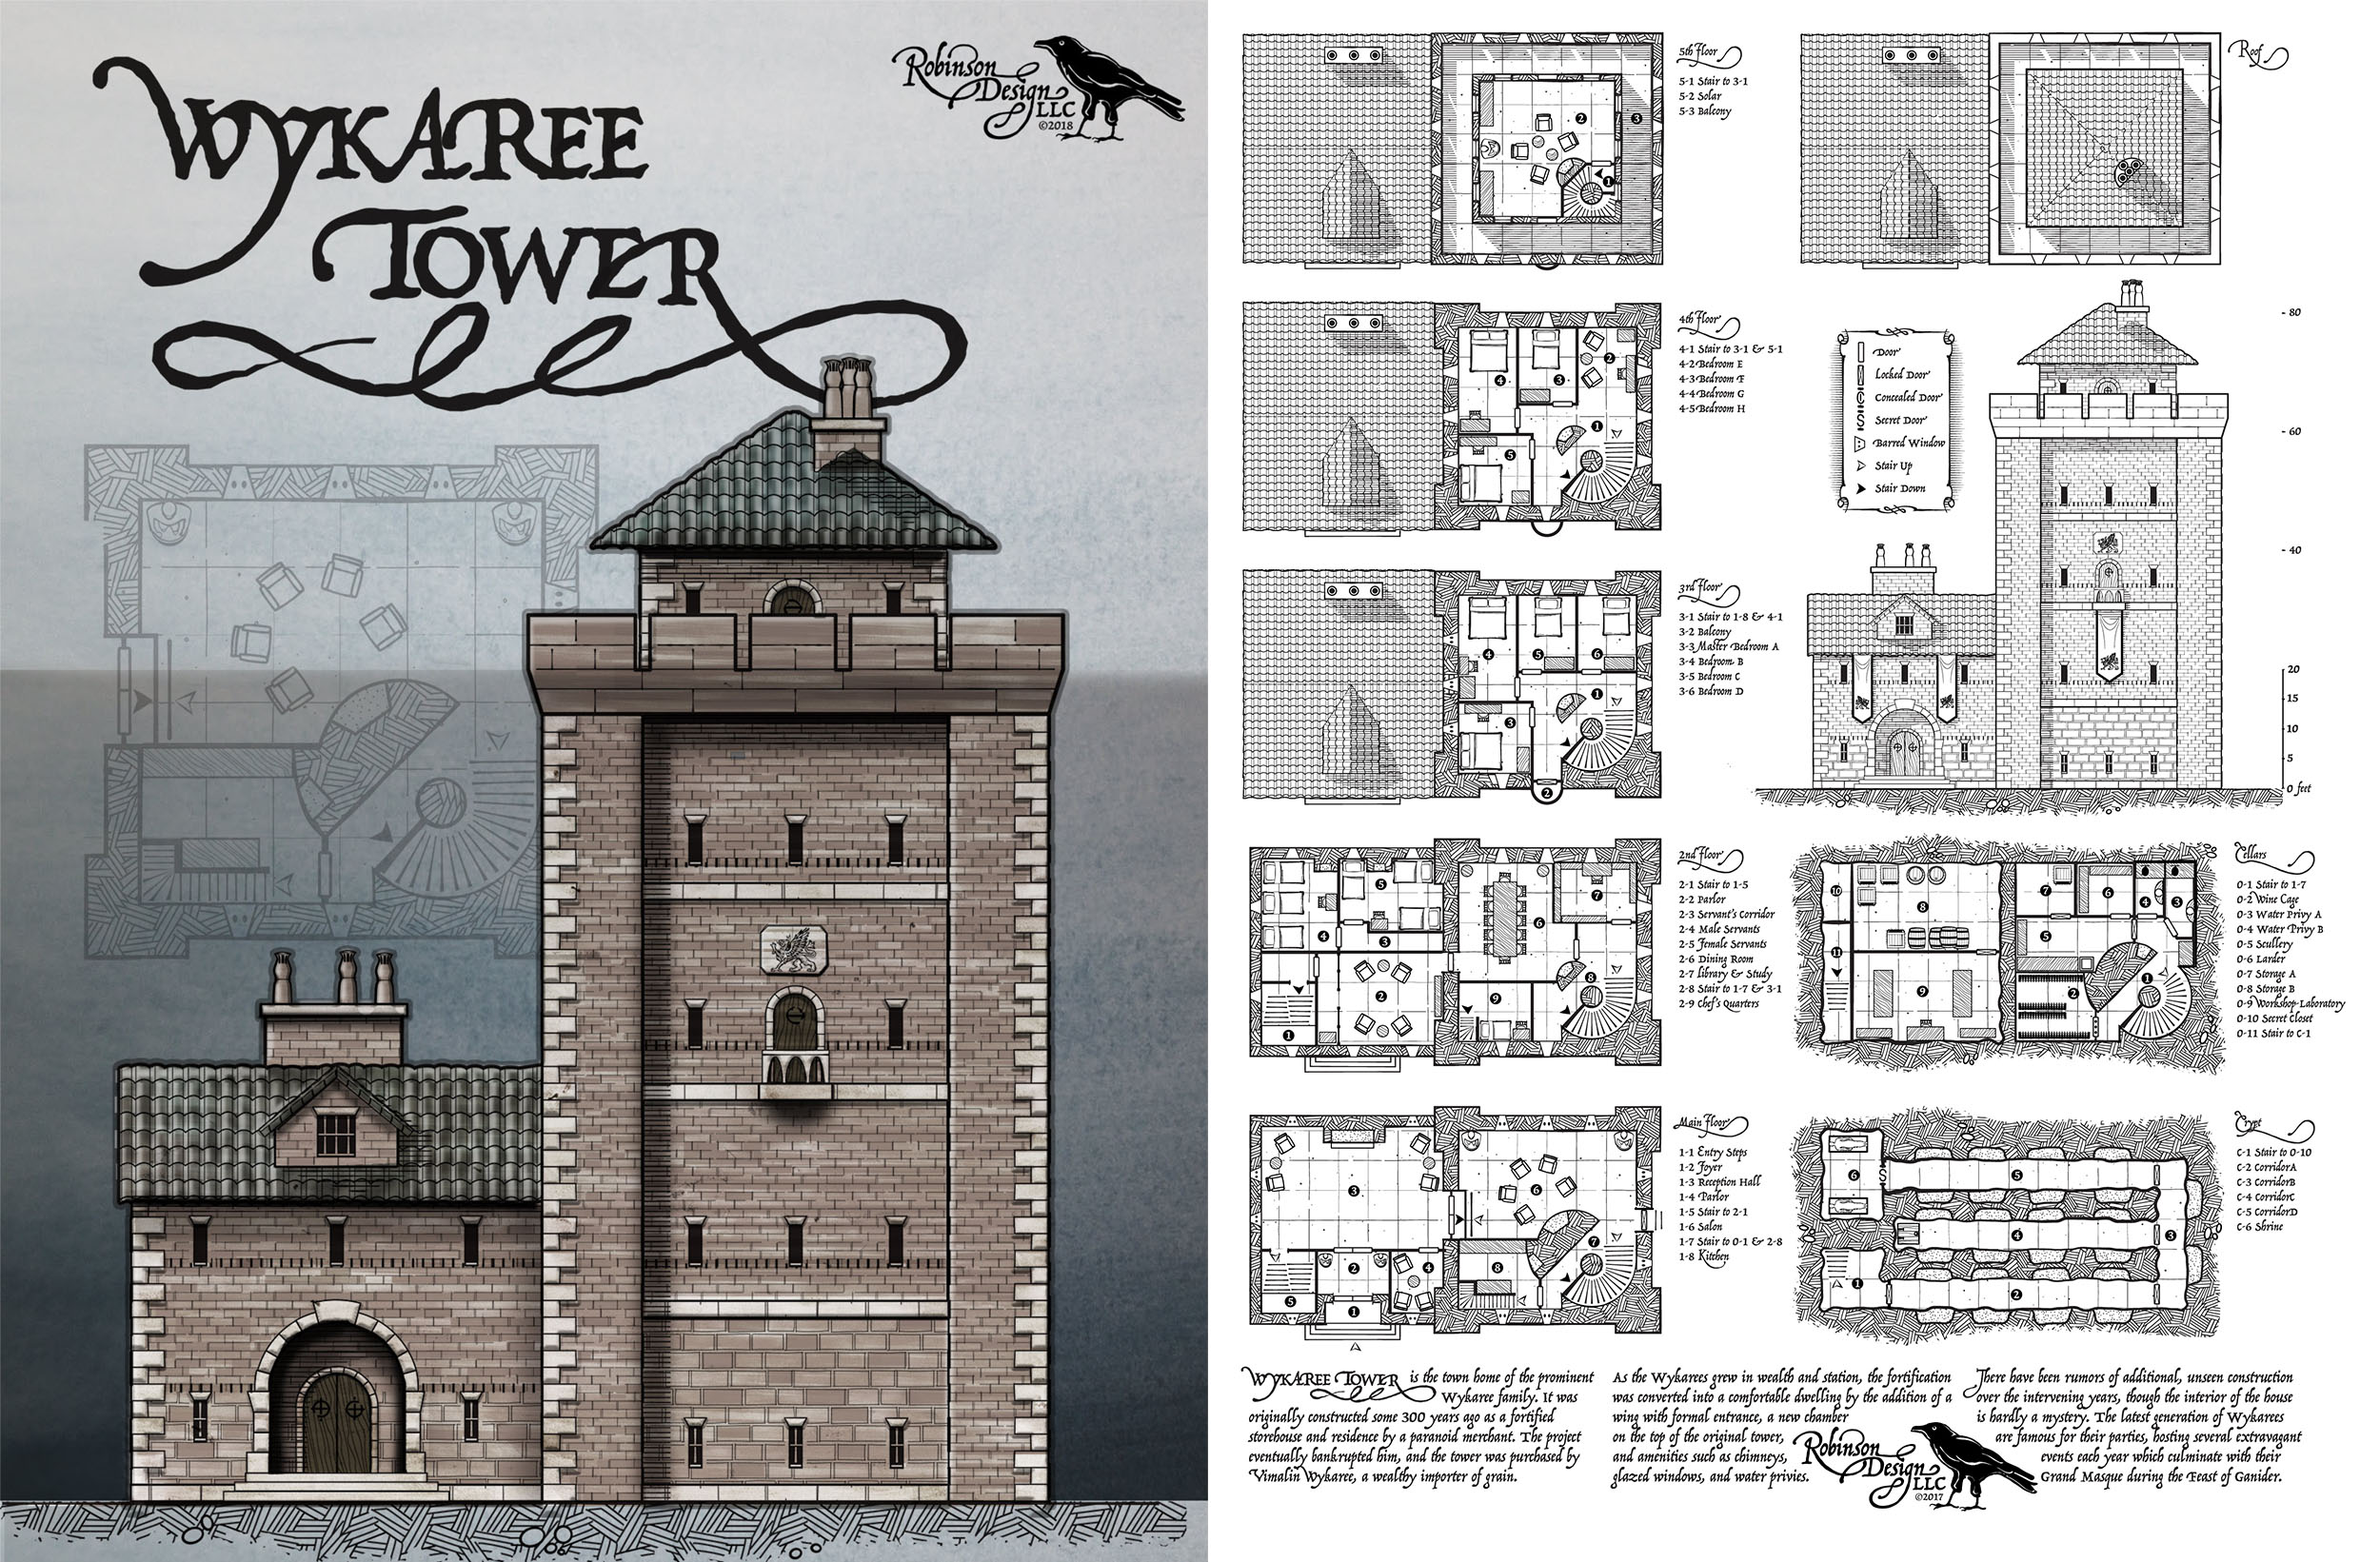 Wykaree Tower